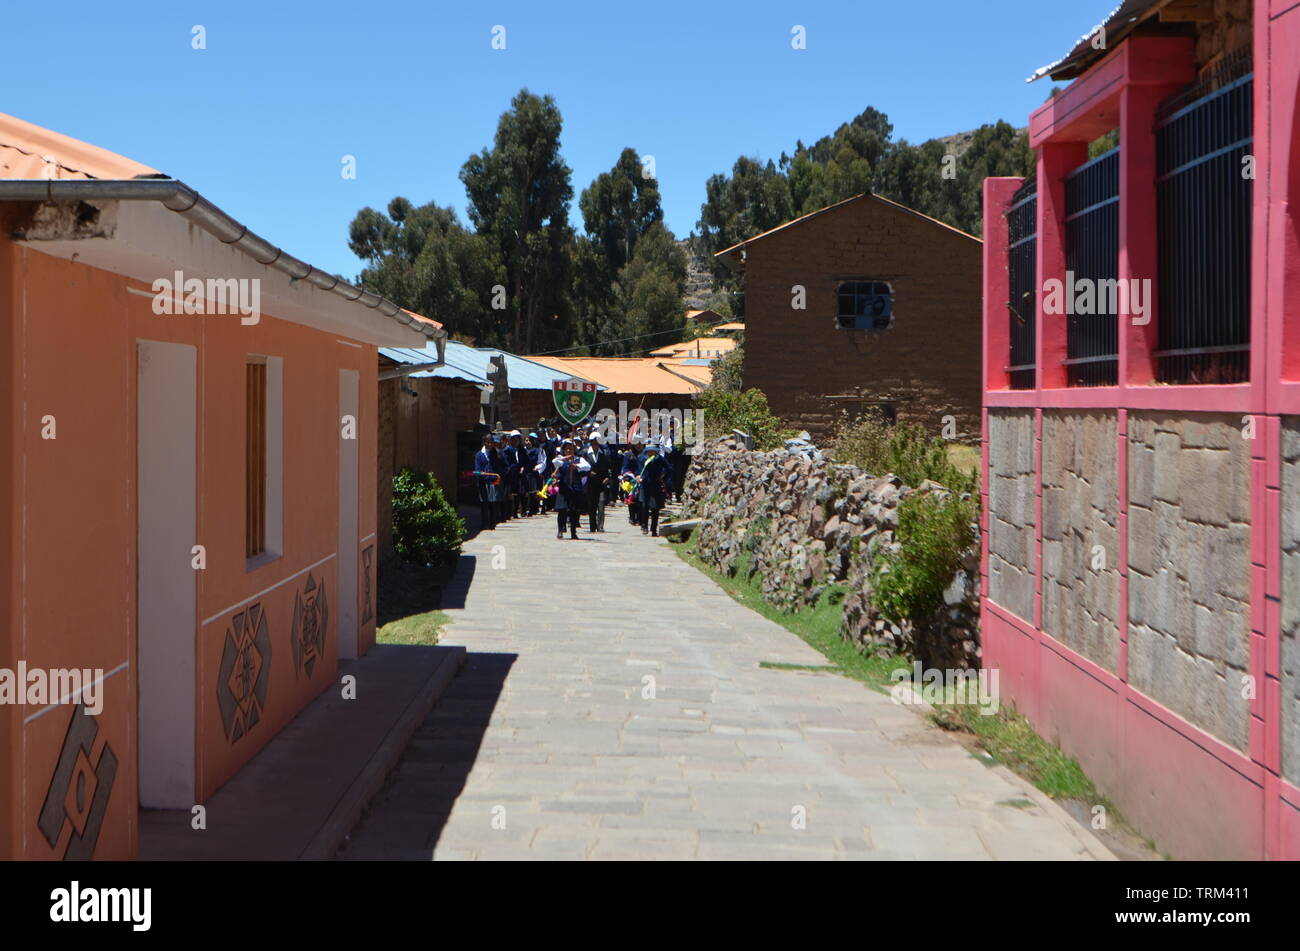 Peru,Puno. Rural houses in the countryside near Lake Titicaca. - Stock Image